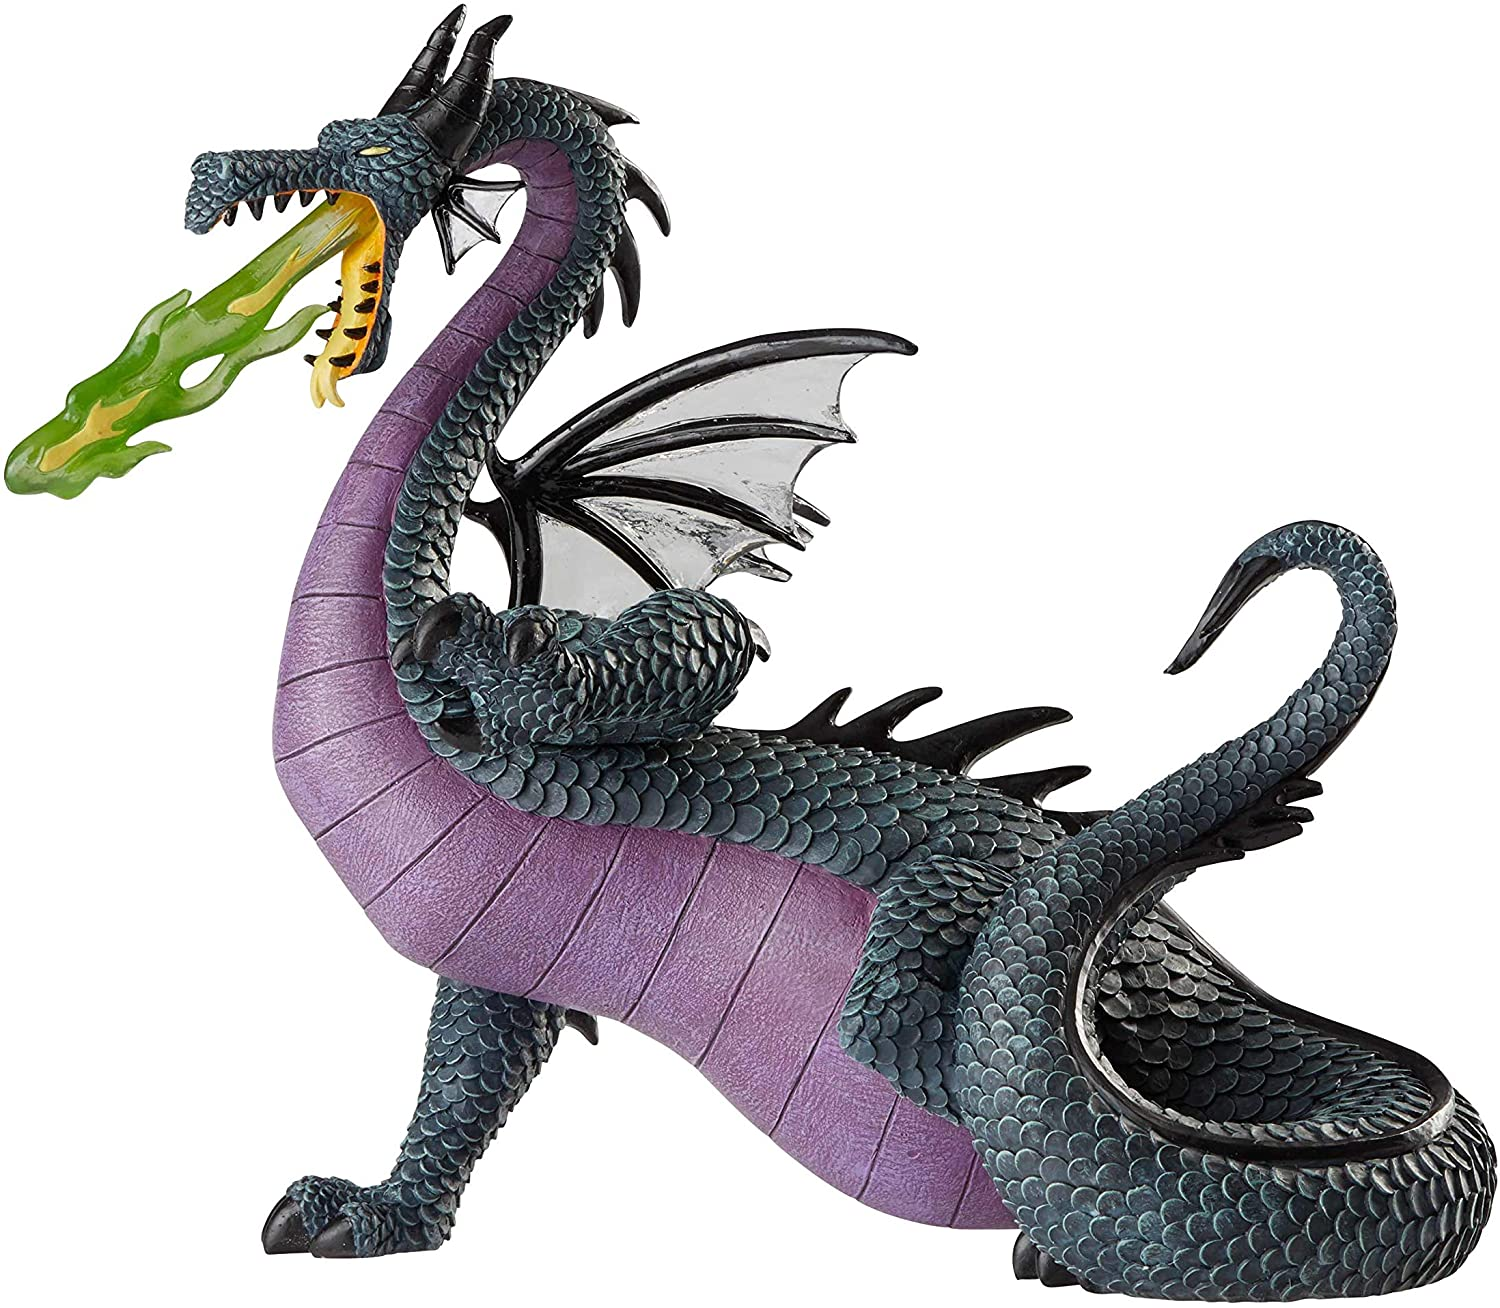 Enesco Disney Showcase Collection Sleeping Beauty Maleficent Dragon Figurine, 7.95 Inch, Multicolor